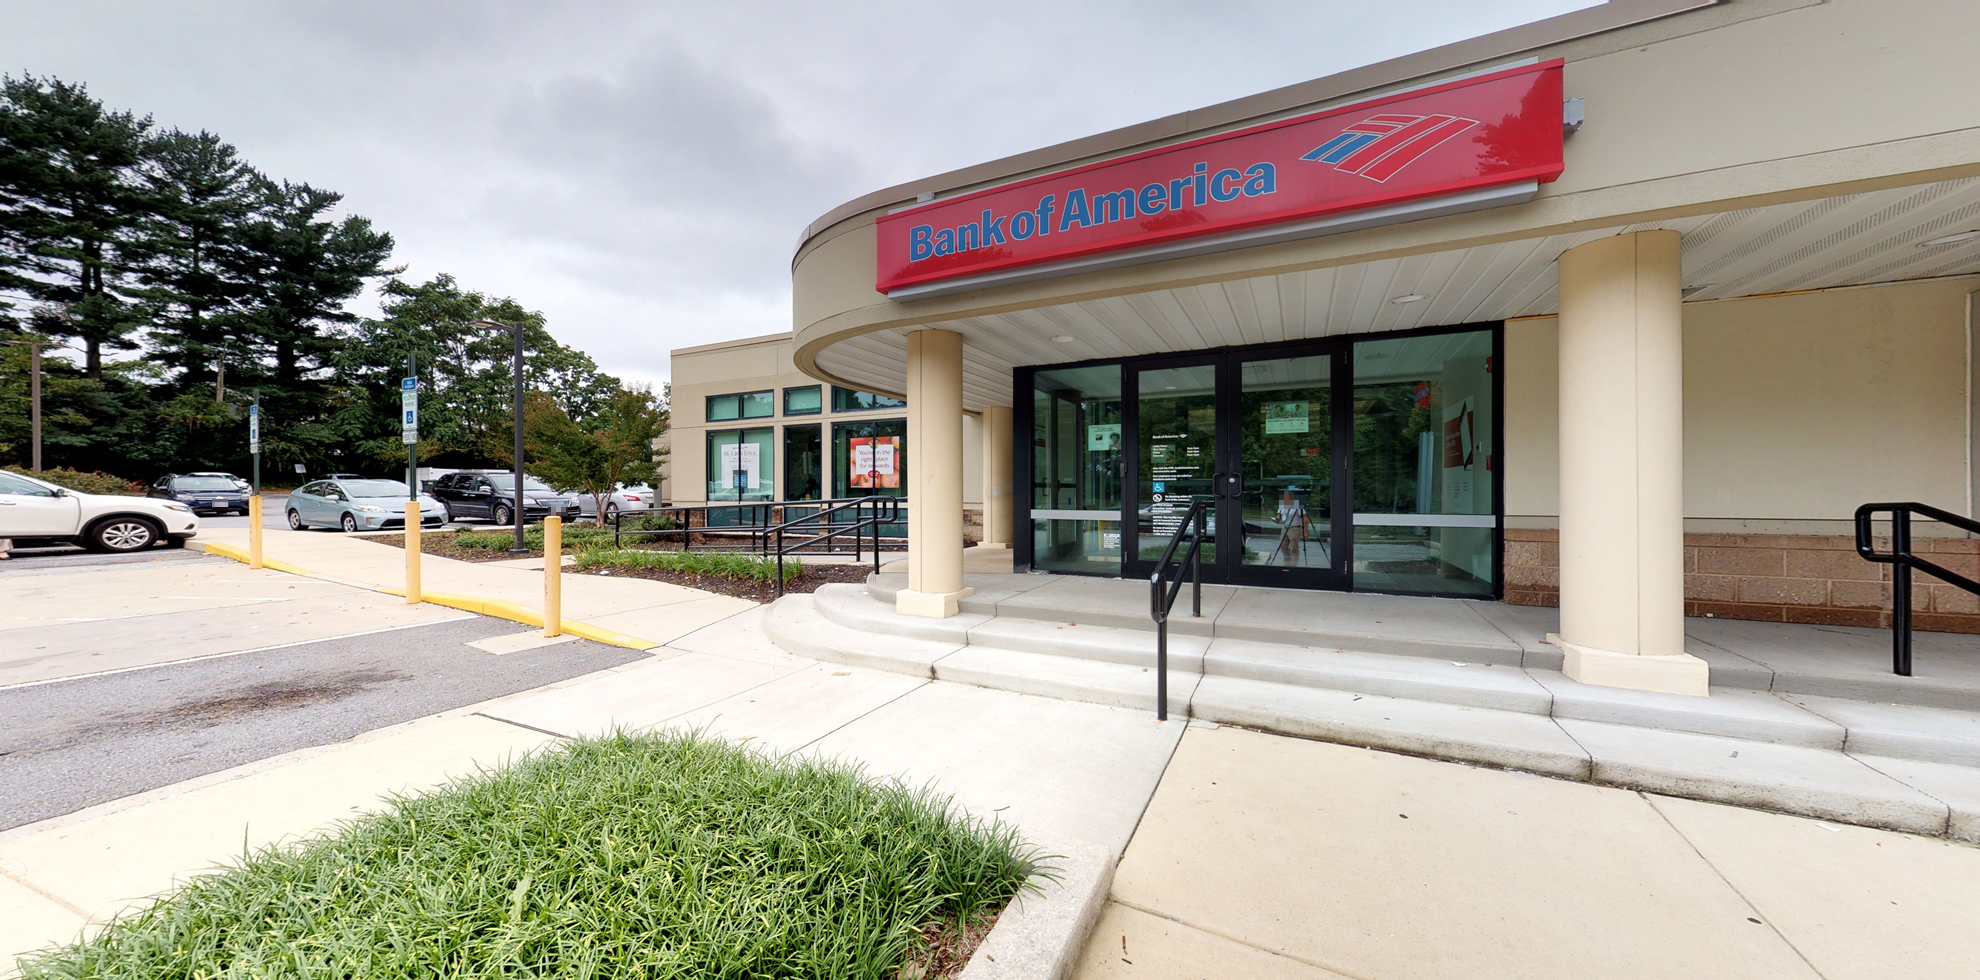 Bank of America financial center with walk-up ATM   3621 Old Court Rd, Baltimore, MD 21208